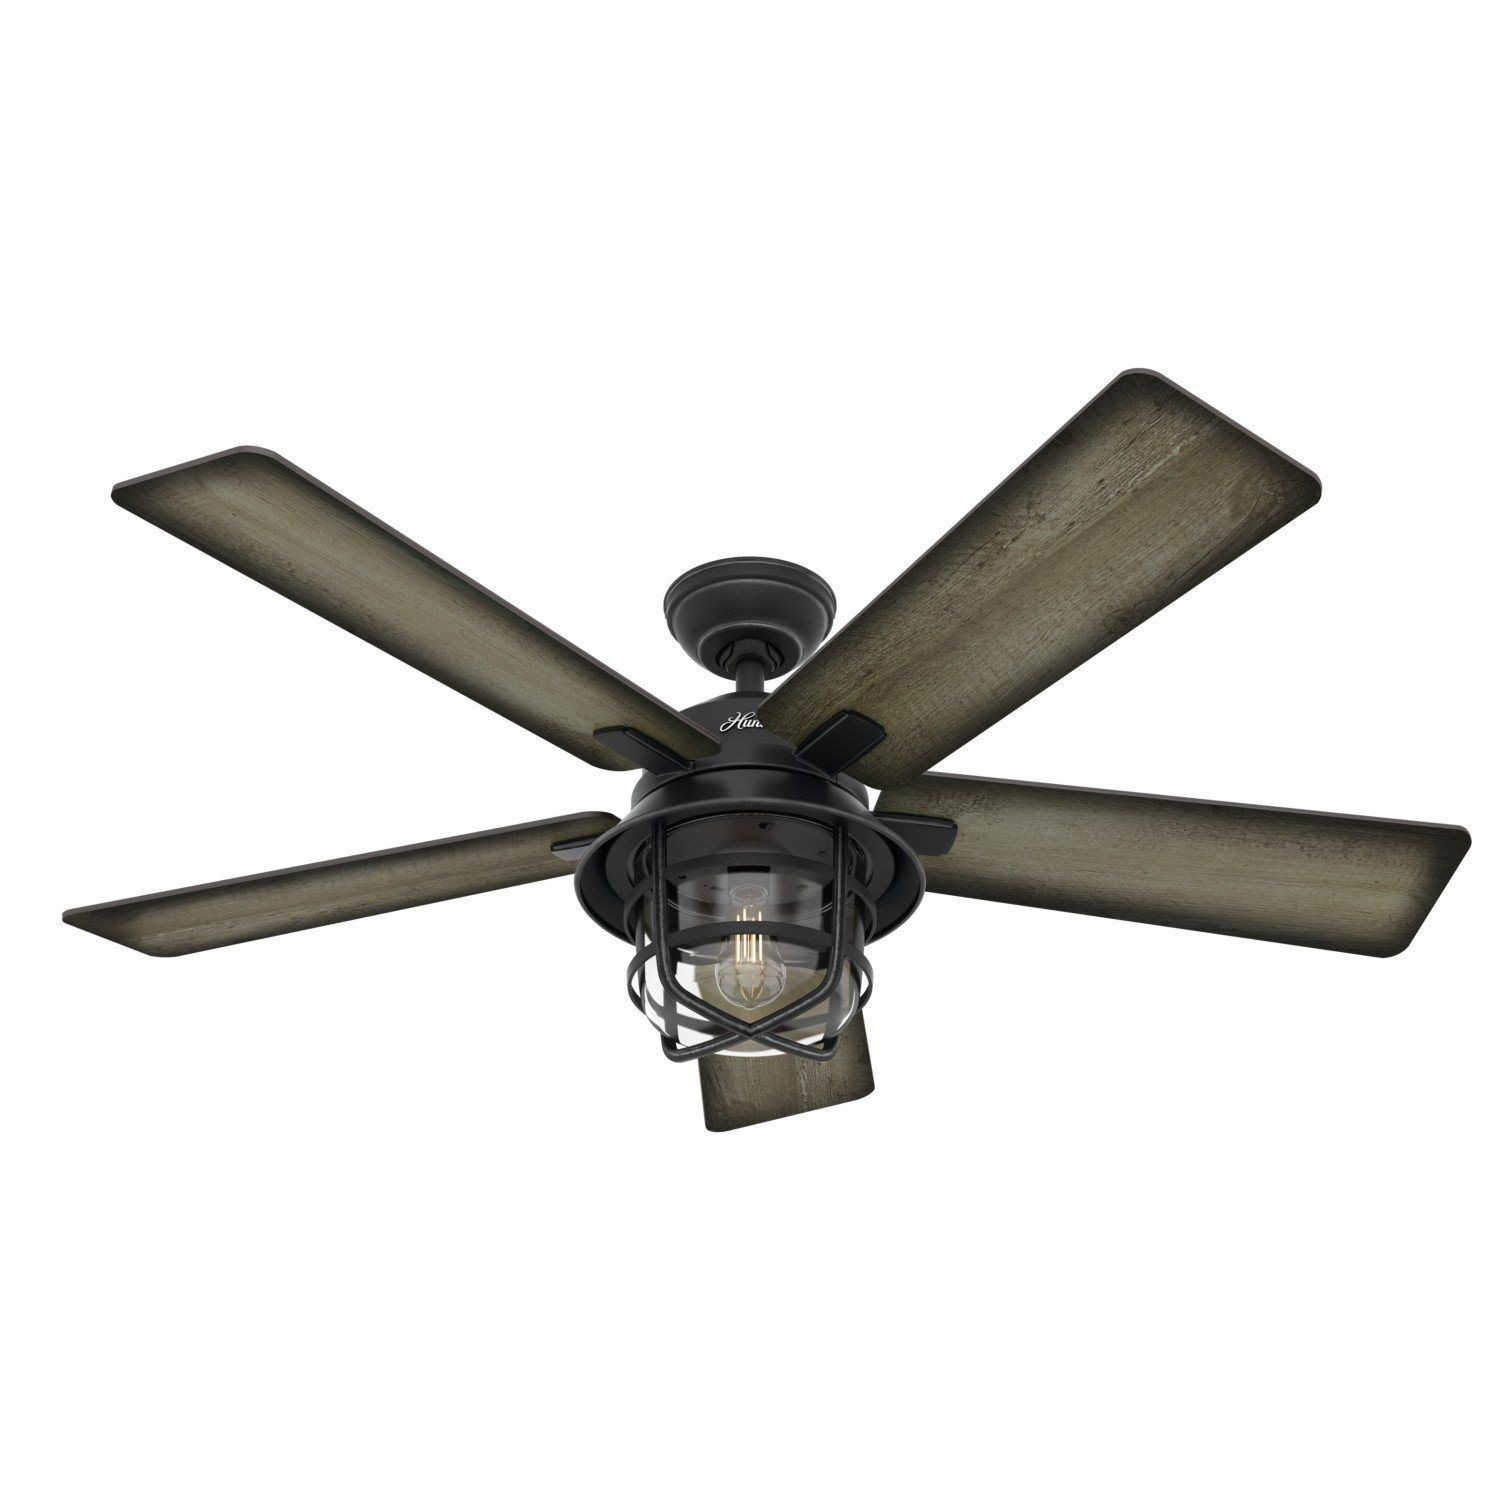 Coral Gables Outdoor With Led Light 54 Inch Weathered Zinc Burnished Grey Pine In 2021 Ceiling Fan Hunter Outdoor Ceiling Fans Led Ceiling Fan Outdoor ceiling fans on sale